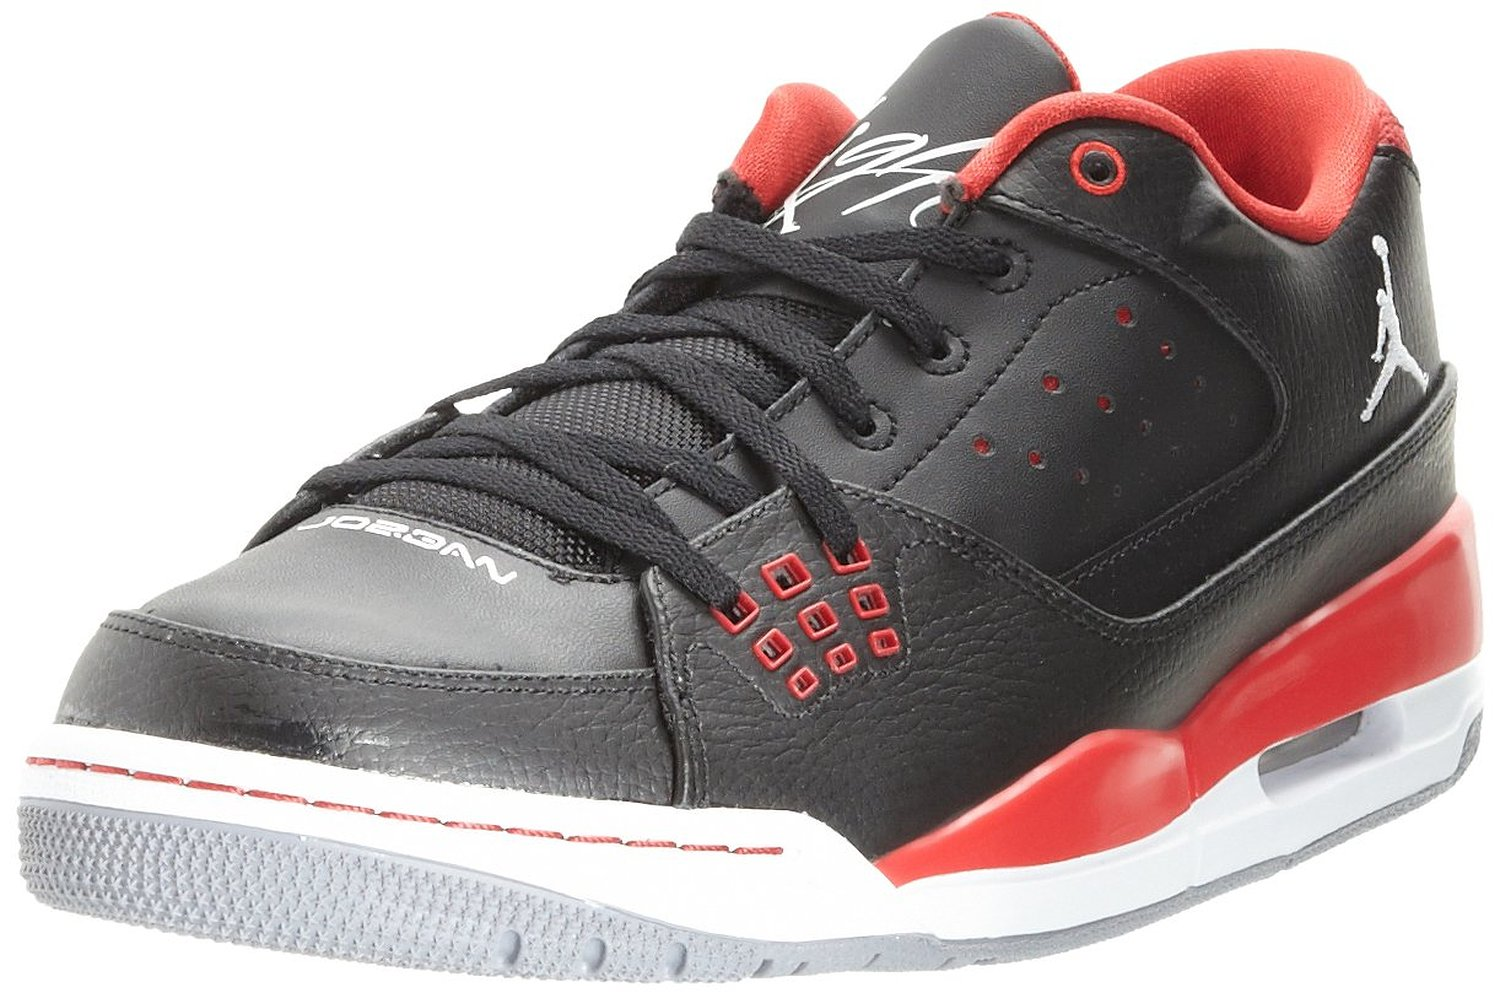 7f3291a72aceb5 Get Quotations · Nike Men s Jordan SC-1 Low